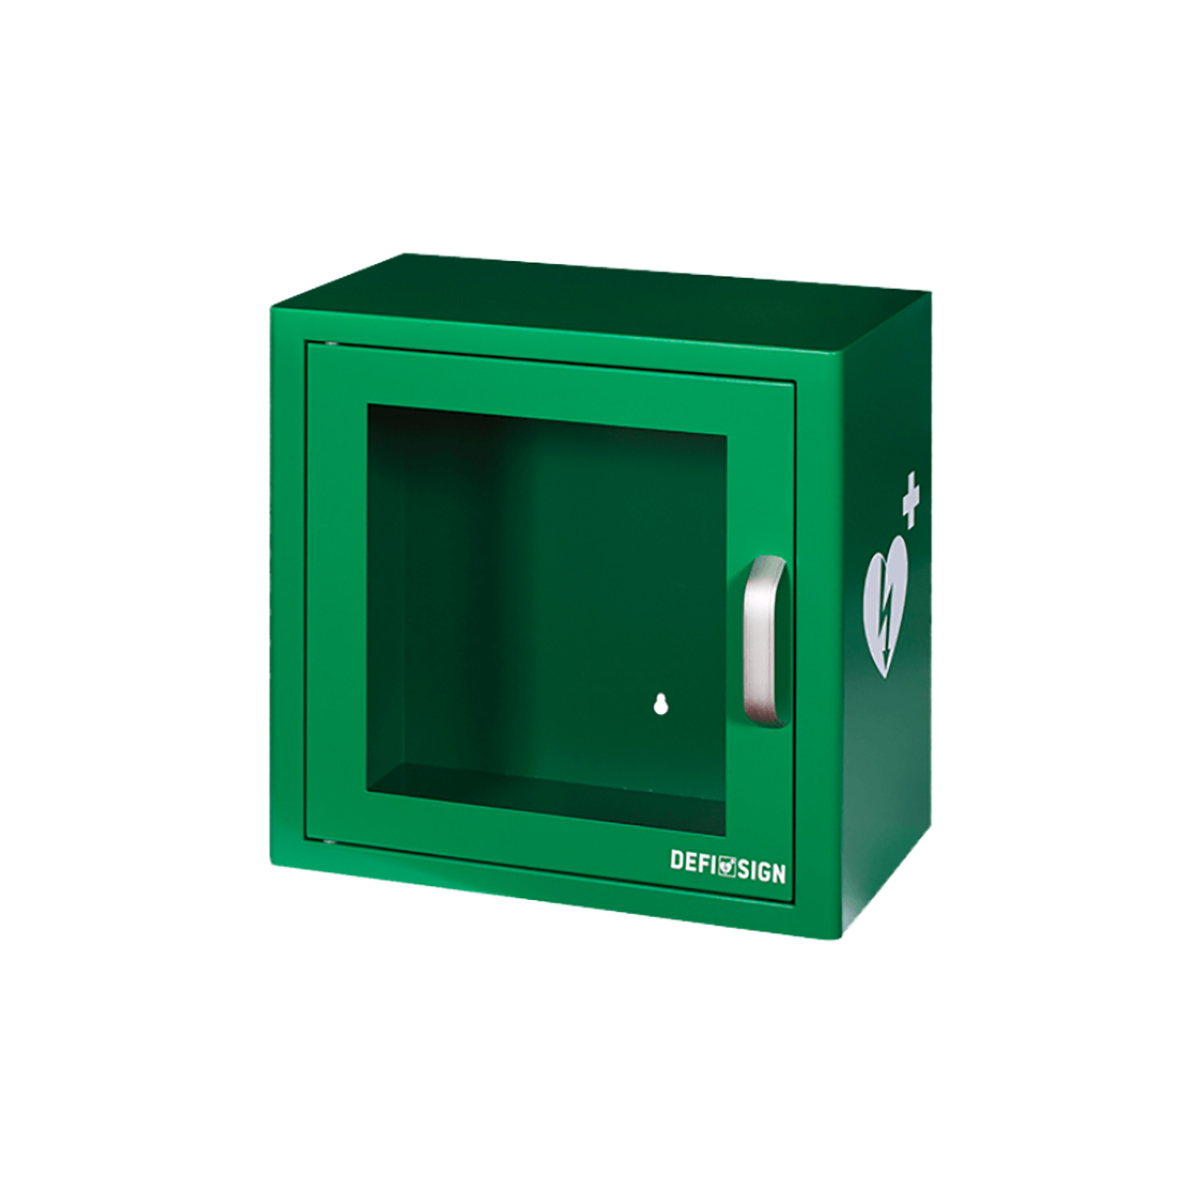 Green Indoor Defibrillator Cabinet with Alarm